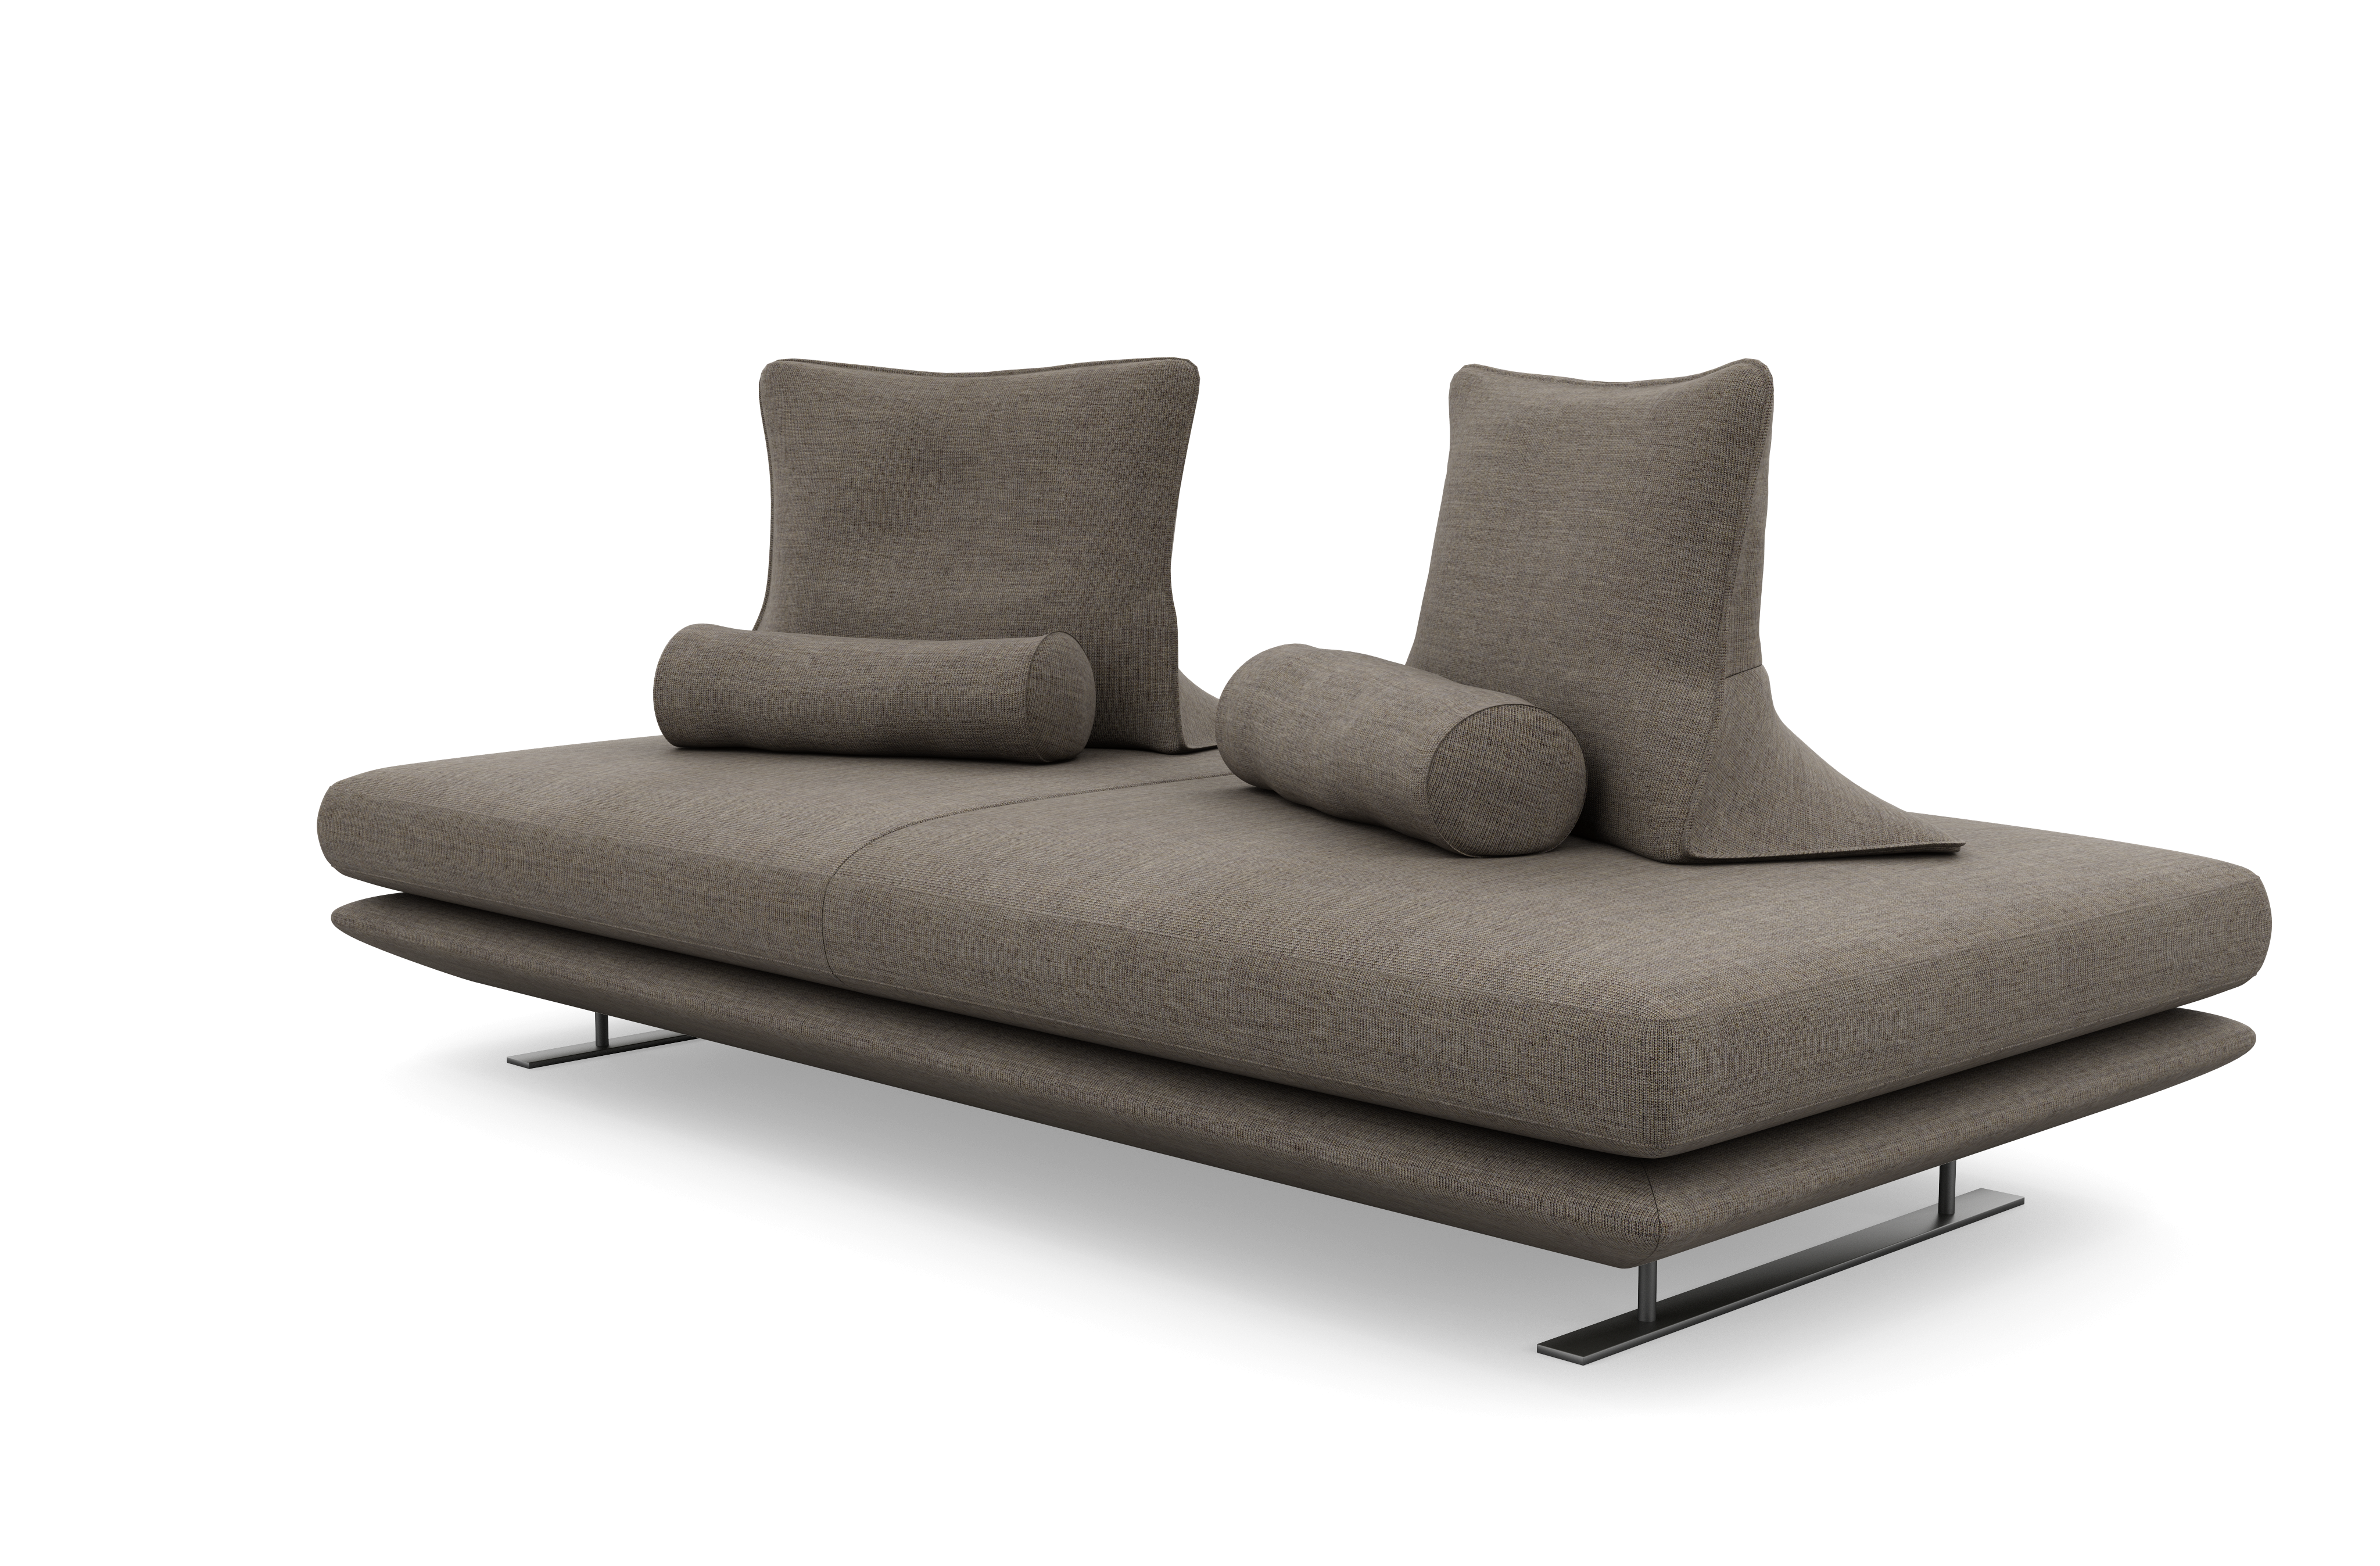 prado sofas designer christian werner ligne roset. Black Bedroom Furniture Sets. Home Design Ideas